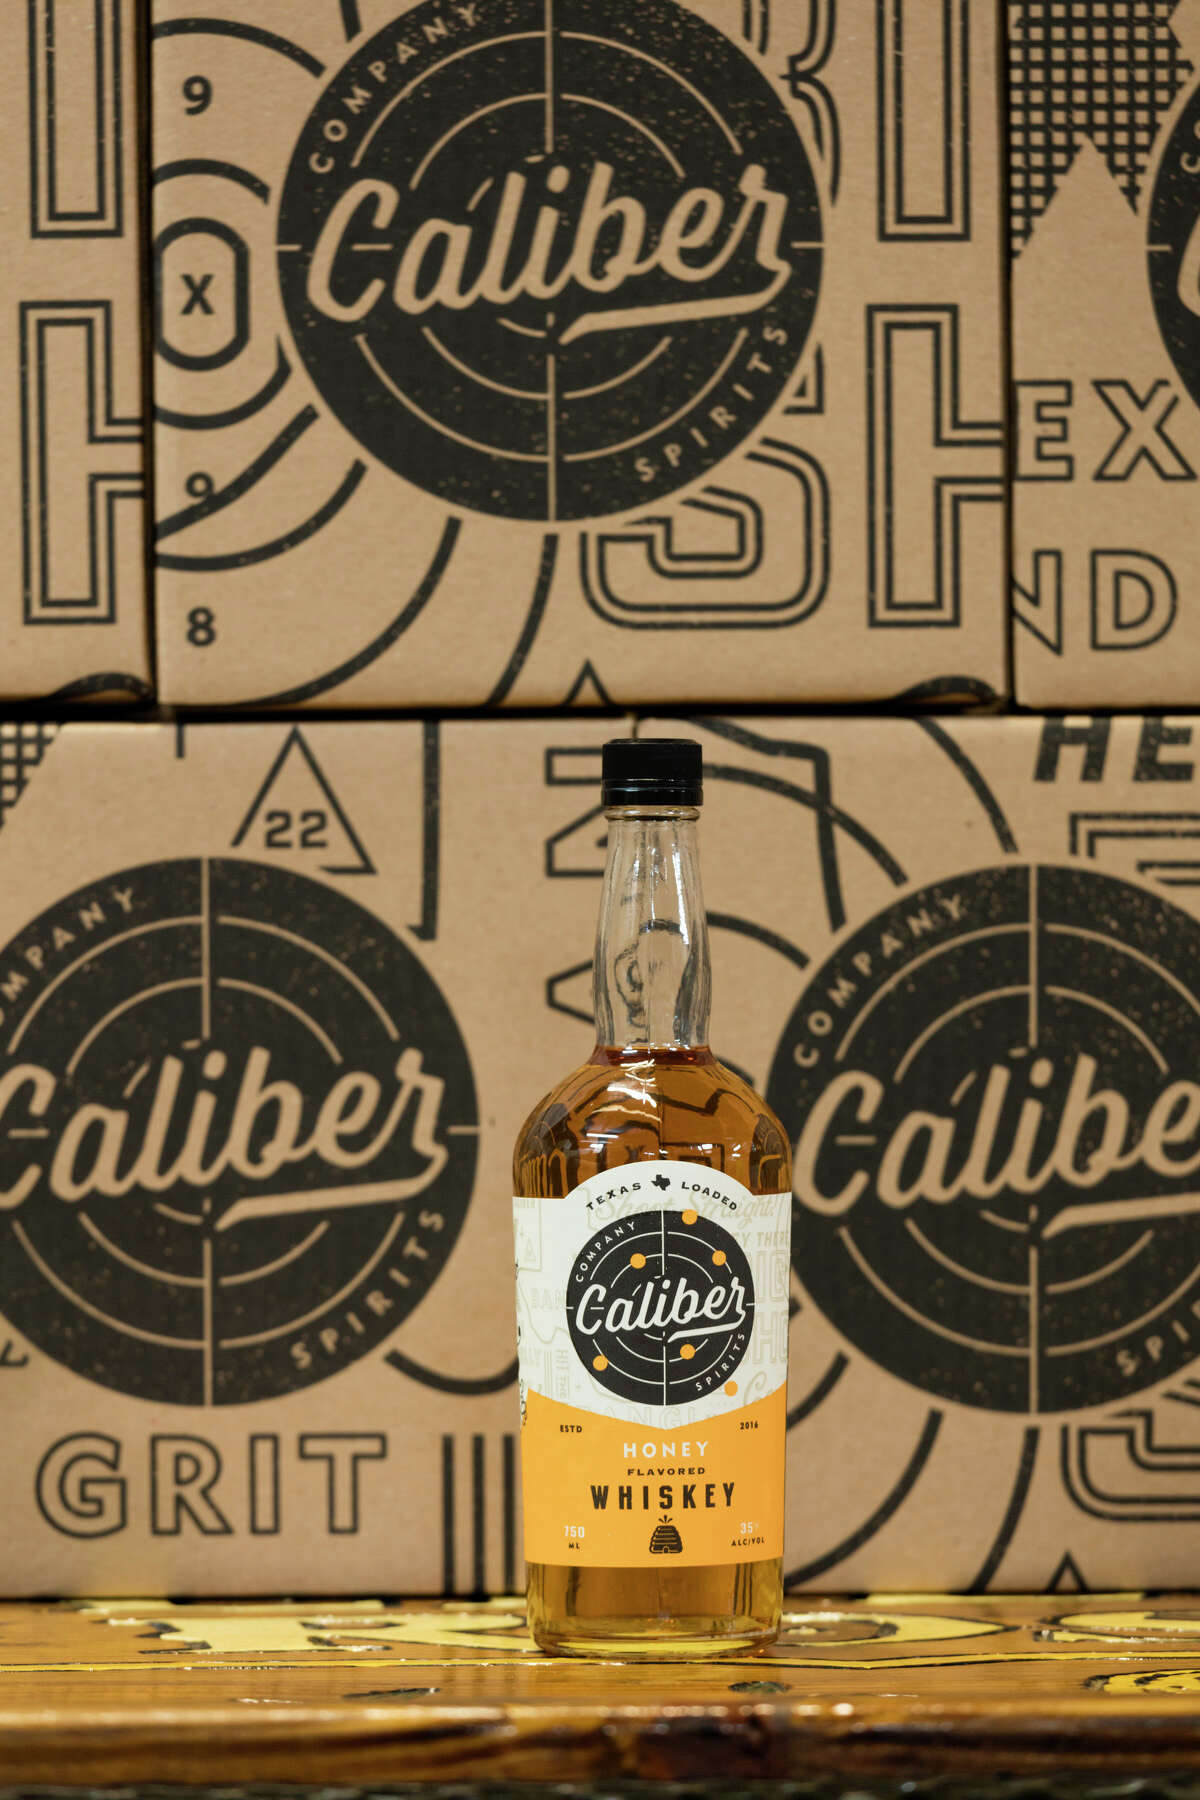 Caliber Company Spirits, a new brand from Yellow Rose Distilling, has created a new line of flavored whiskeys. Shown: Honey whiskey infused with notes of honey and maple syrup.